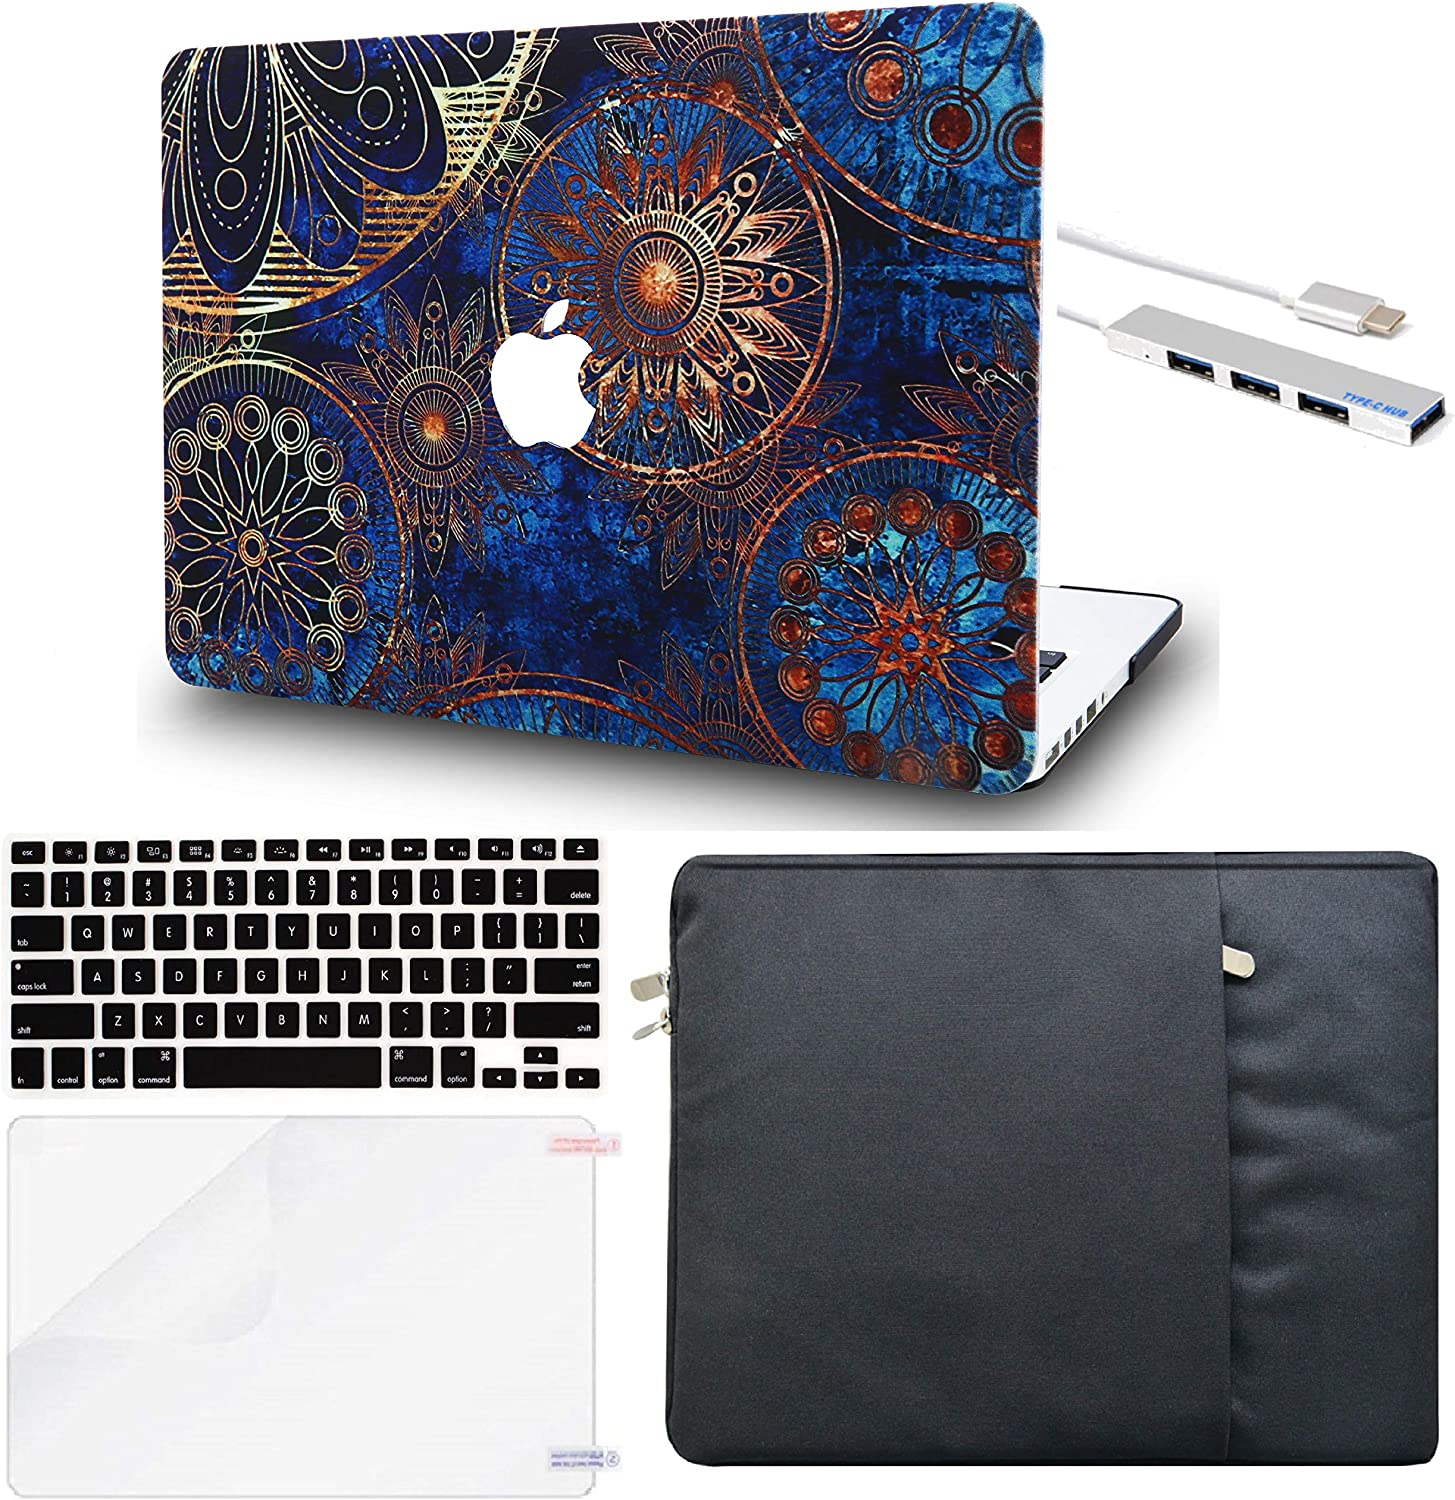 LuvCase 5in1 Laptop Case for MacBook Air 13 Inch (Touch ID) (2018-2020) A1932 Retina Displayy Hard Shell Cover, Sleeve, USB Hub 3.0, Keyboard Cover&Screen Protector (Bohemian)